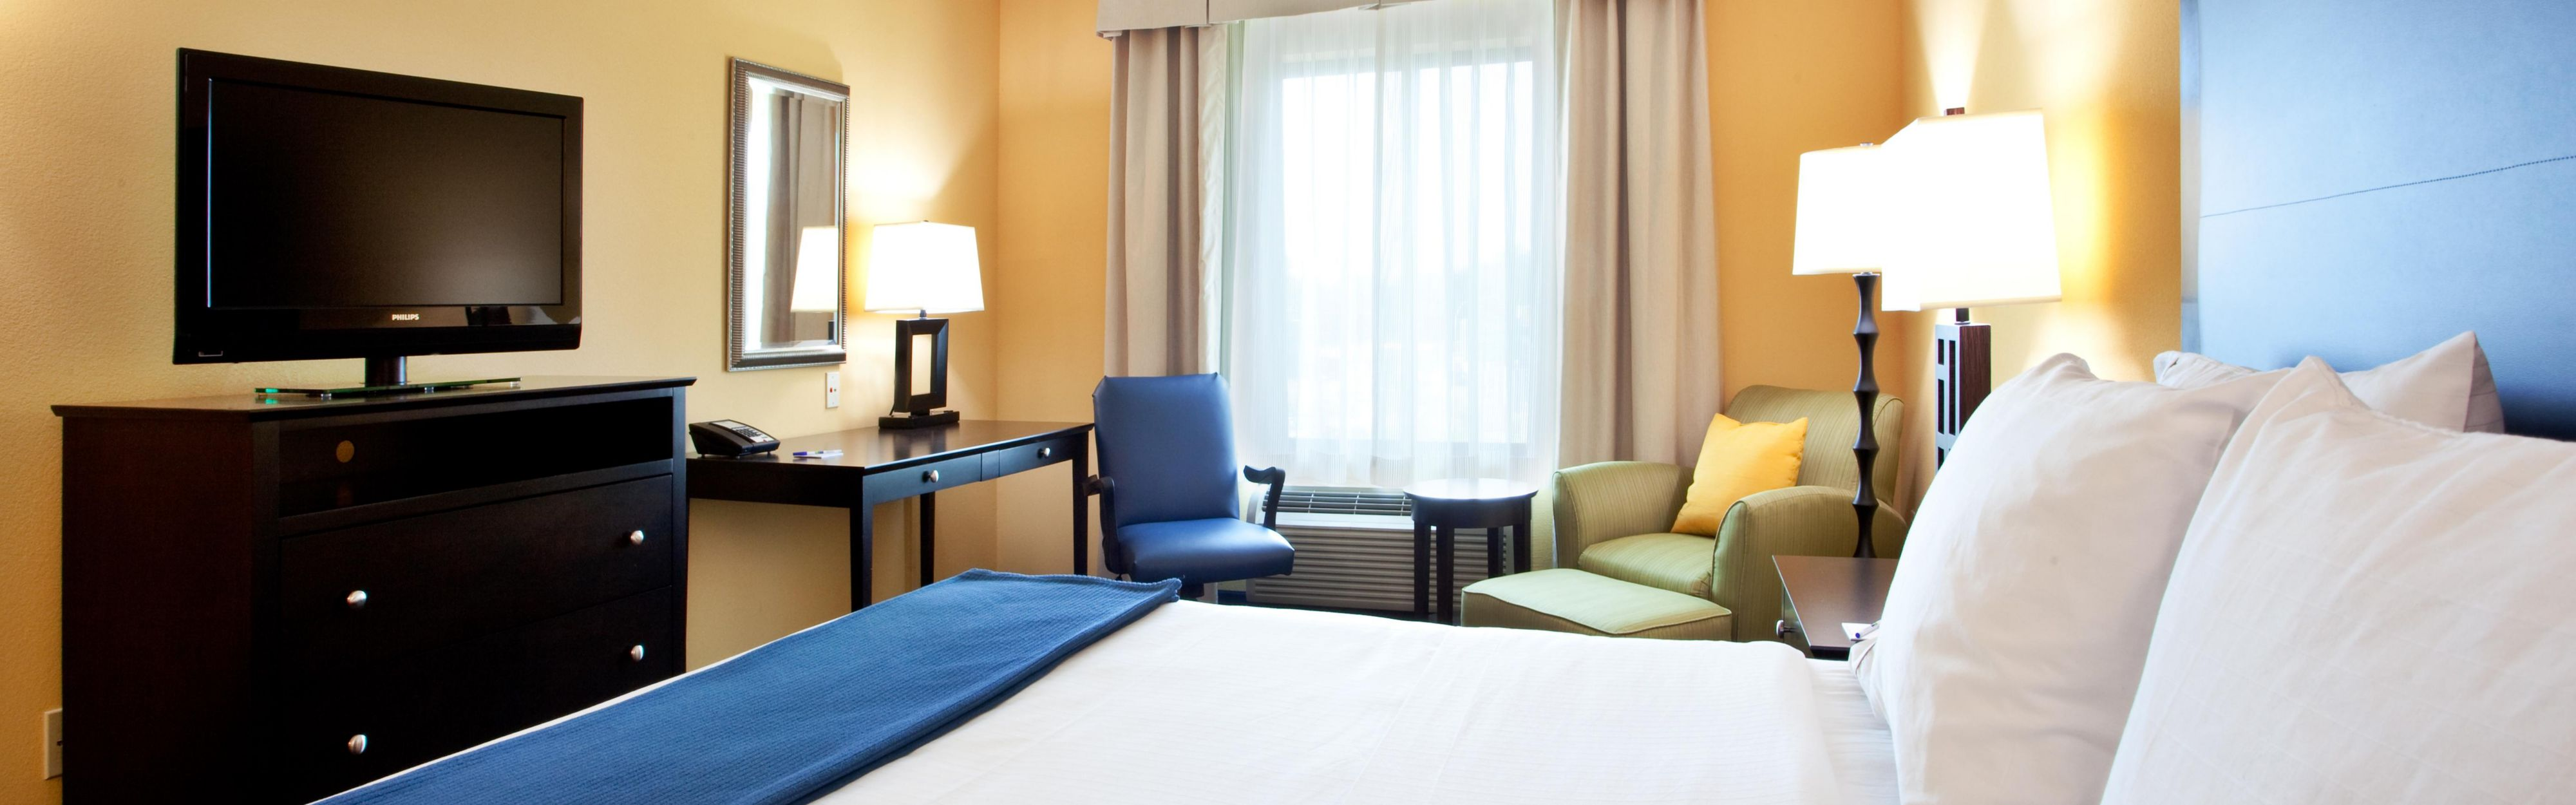 Holiday Inn Express & Suites Wilmington-Newark image 1